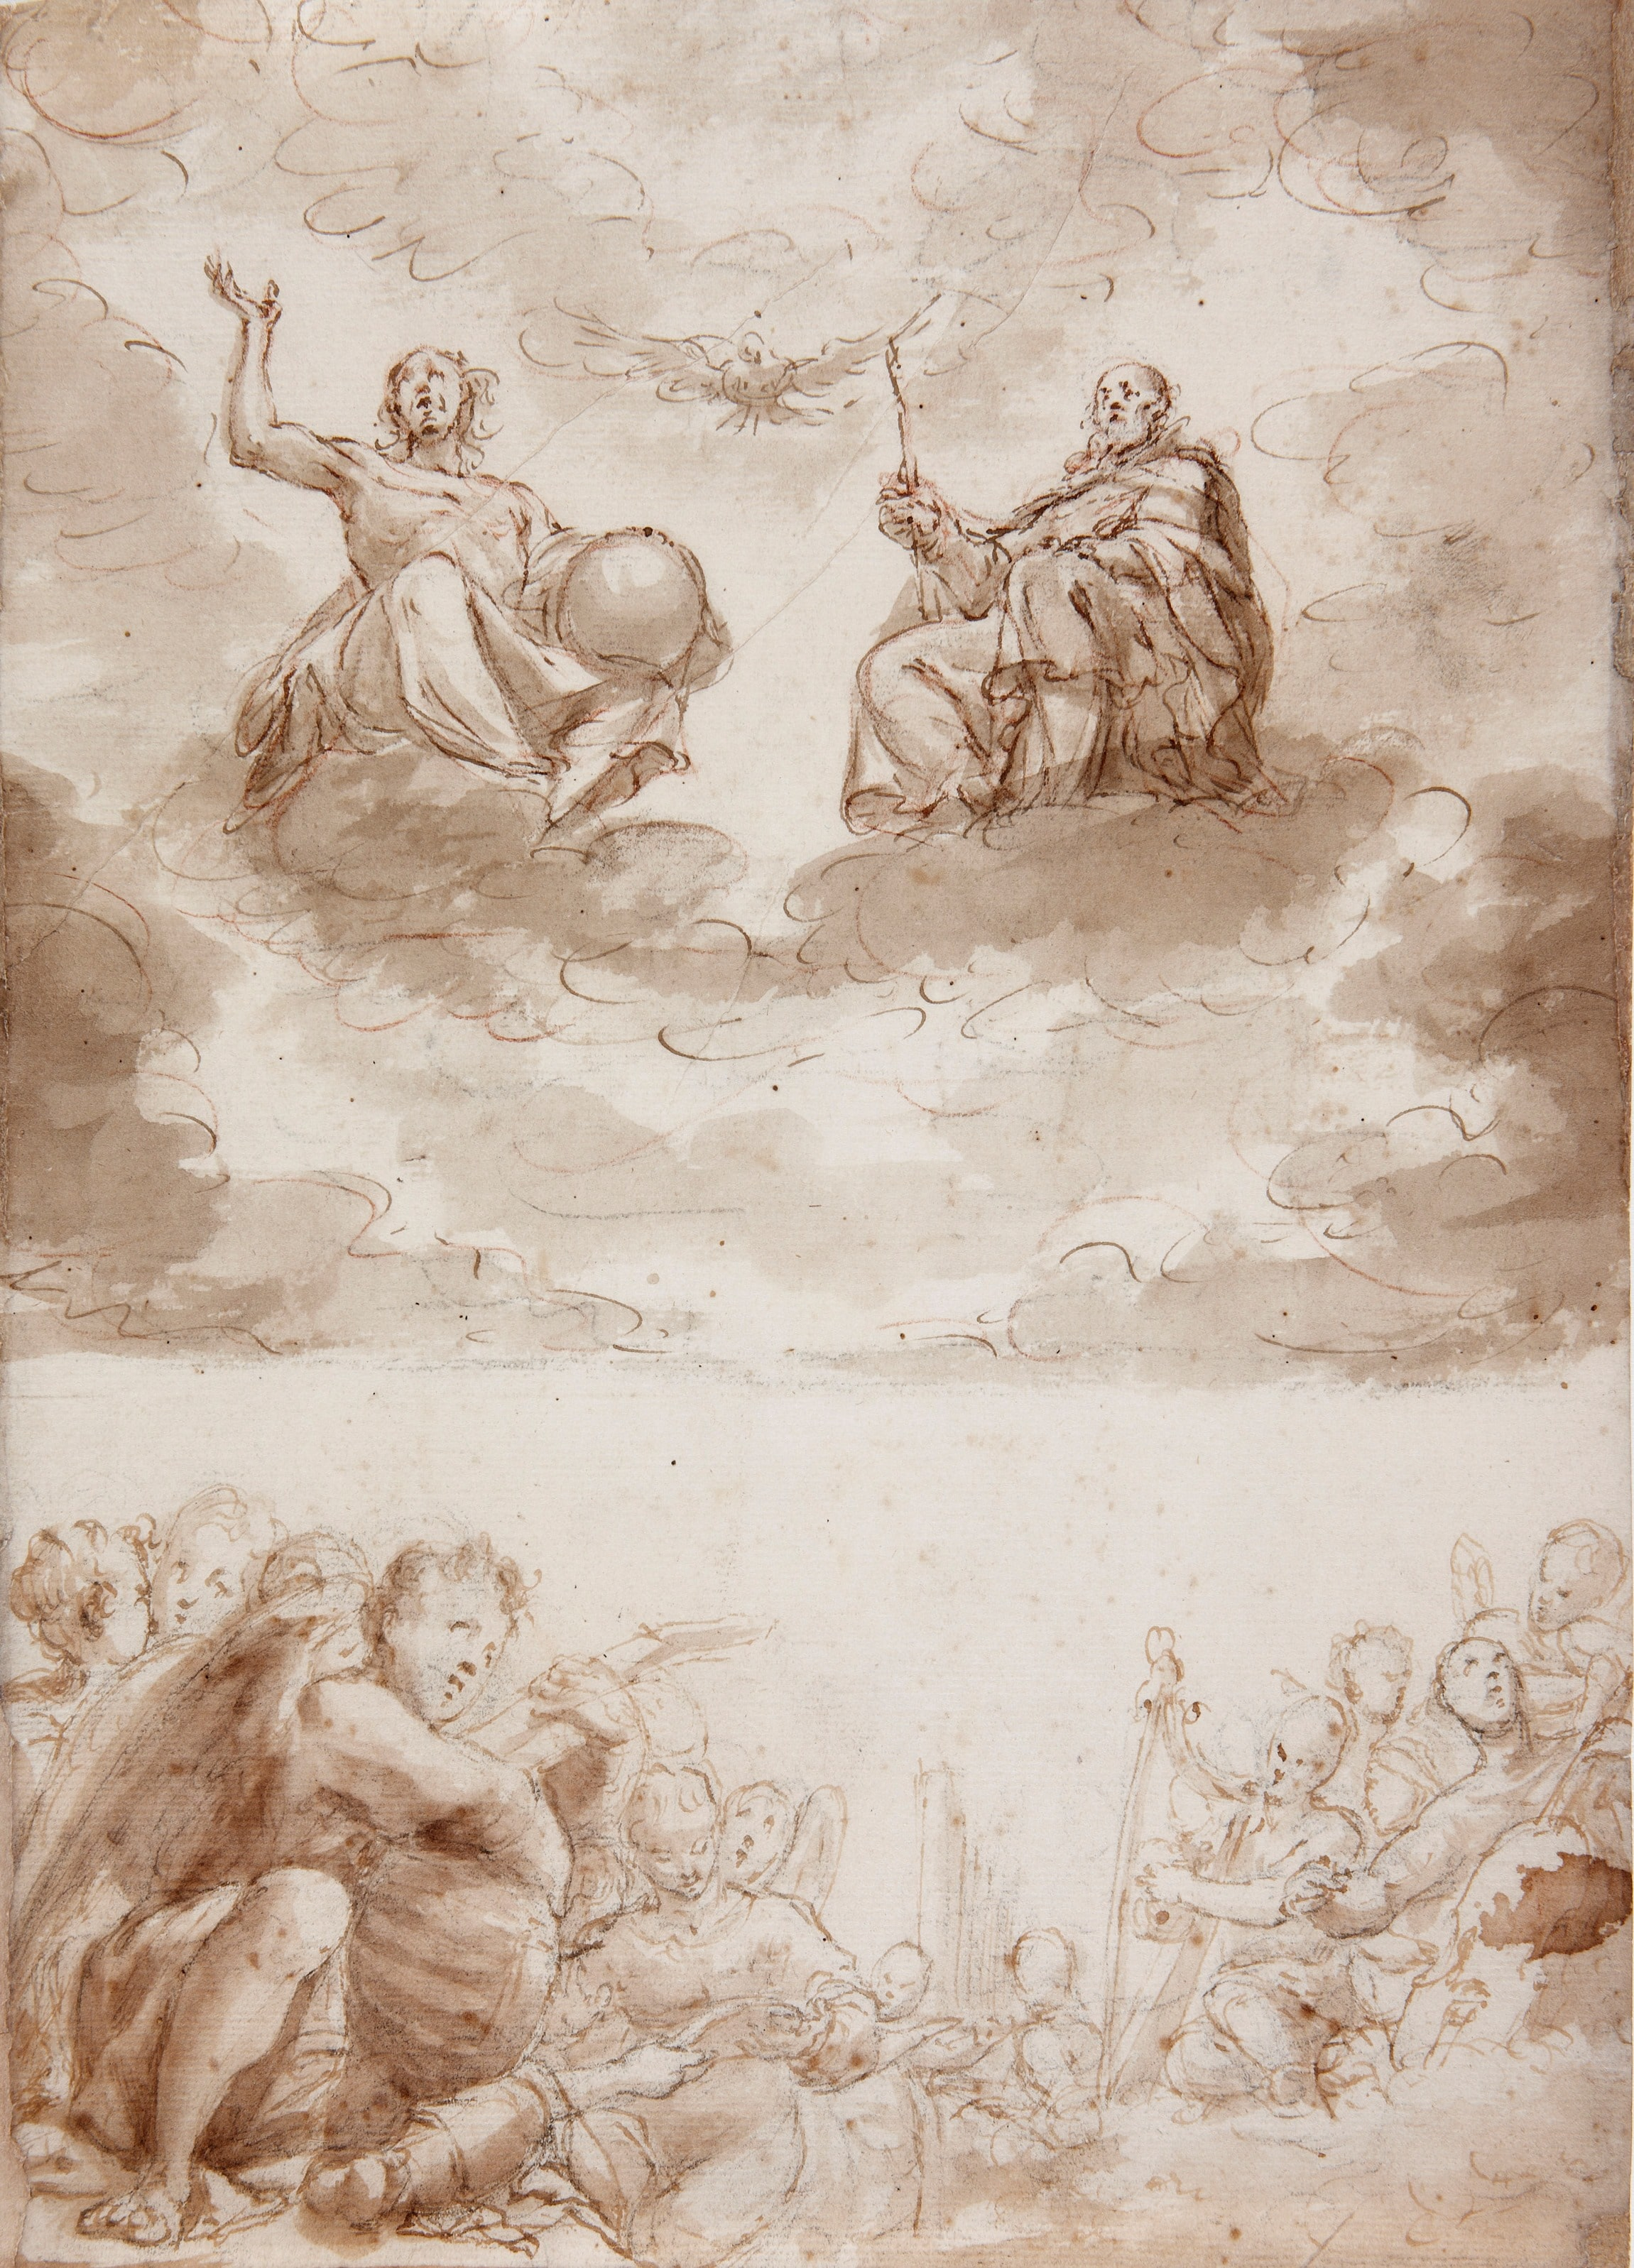 The Trinity and Musical Angels - Antonio de Pereda. Attributed to